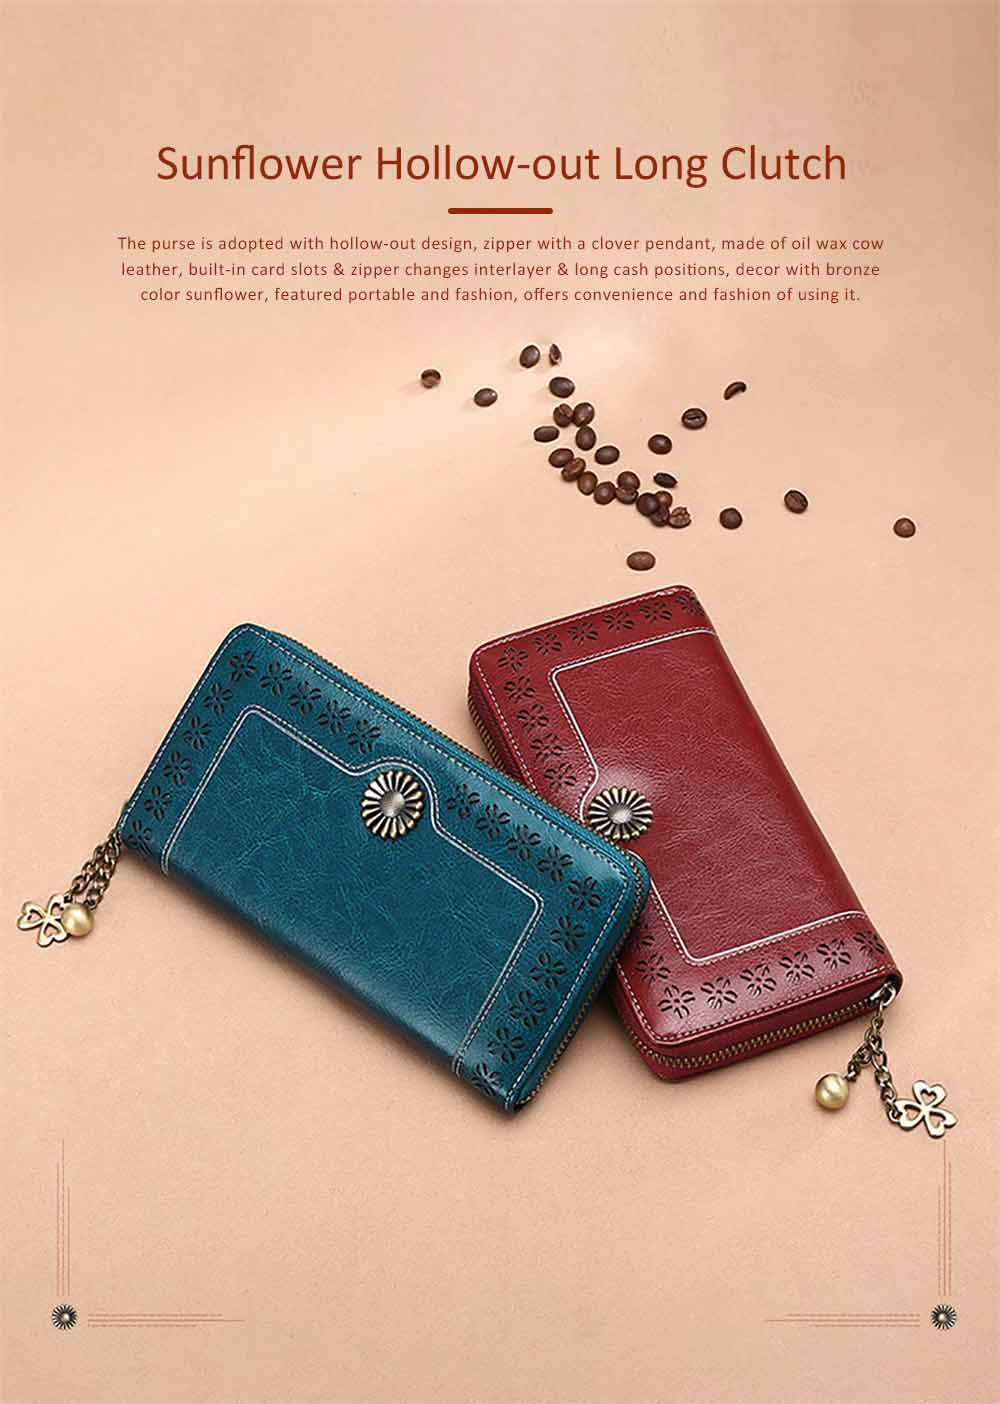 Classical Hollow-out Sunflower Lady Clutch, Genuine Leather Zipper Clutch Pendant Card Holder Purse Long Clutch Bag 0